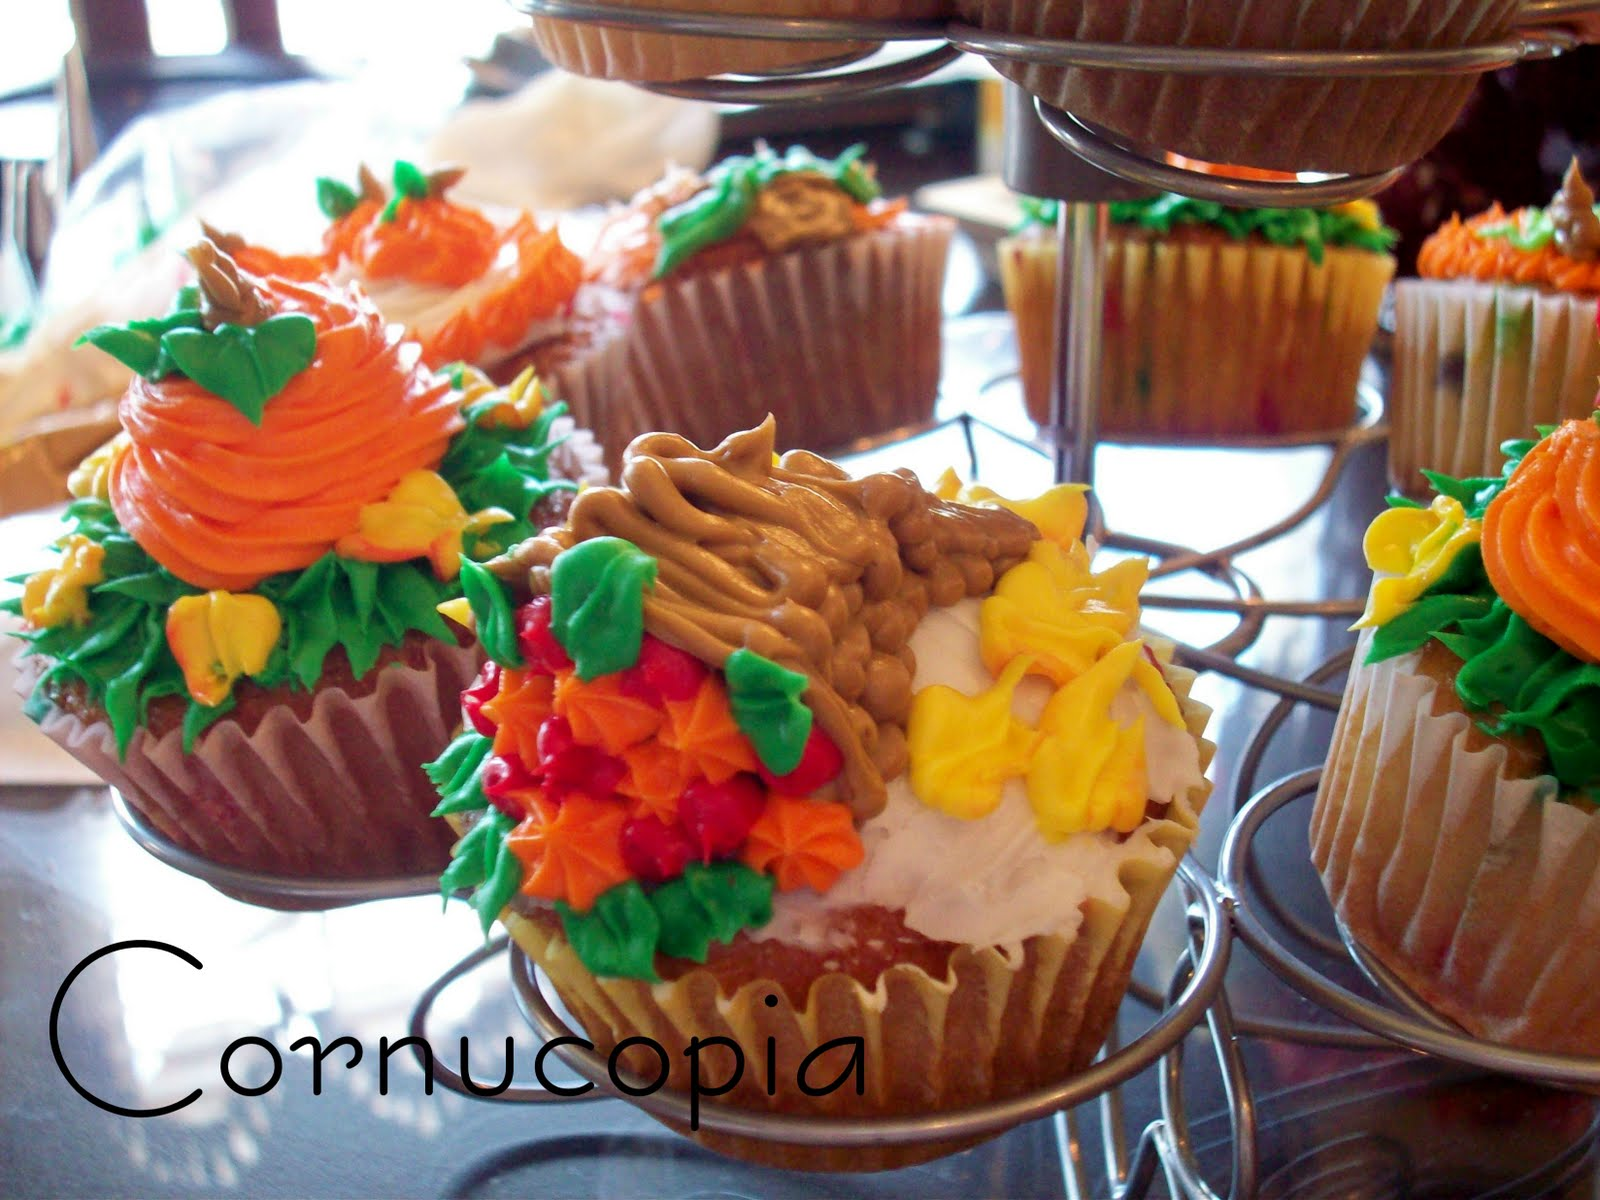 Fall Themed Cupcake Ideas http://thelifeofjenniferdawn.blogspot.com/2011/09/fall-cupcakes.html